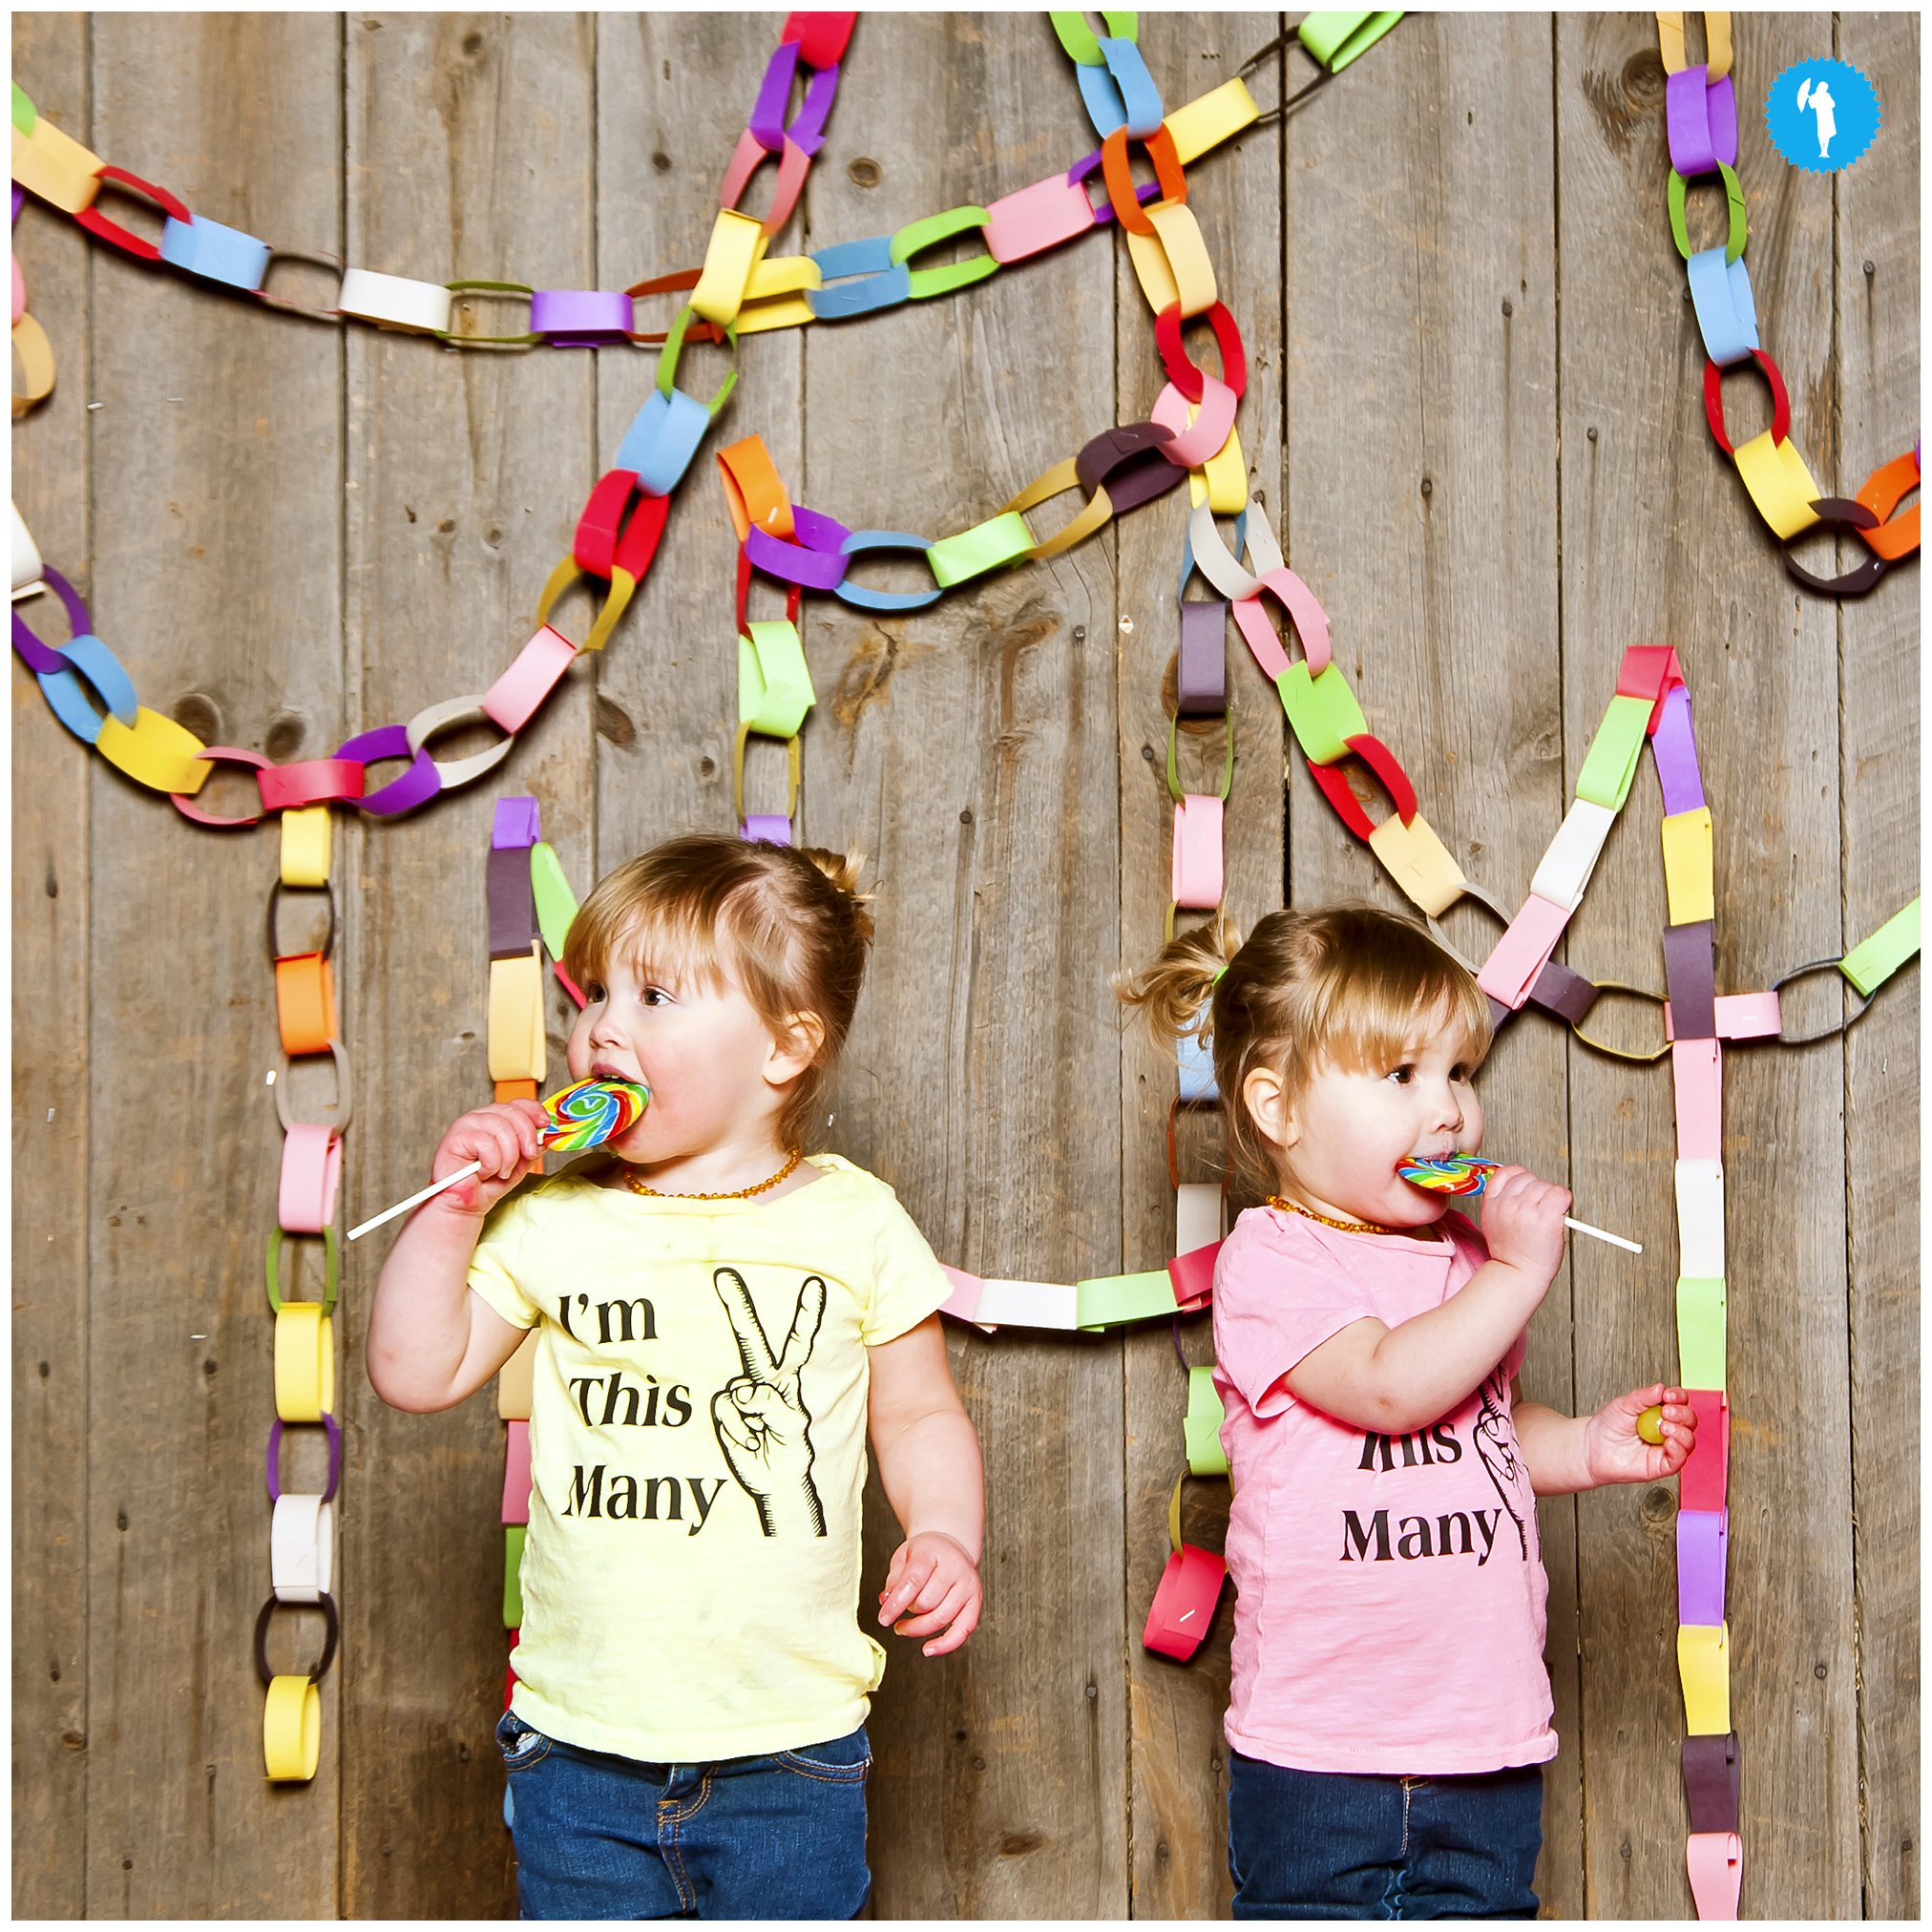 Twins turn 2 portraits by Emily Beatty Imagery.